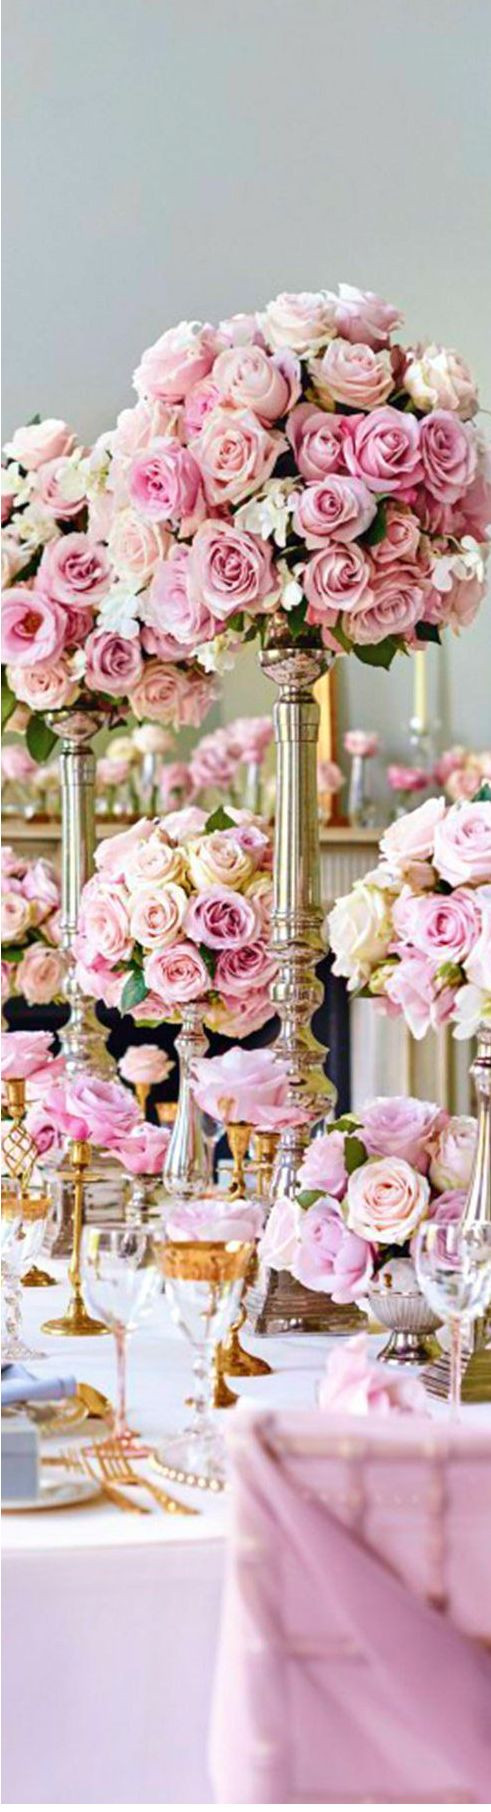 Roses and silver table centerpiece